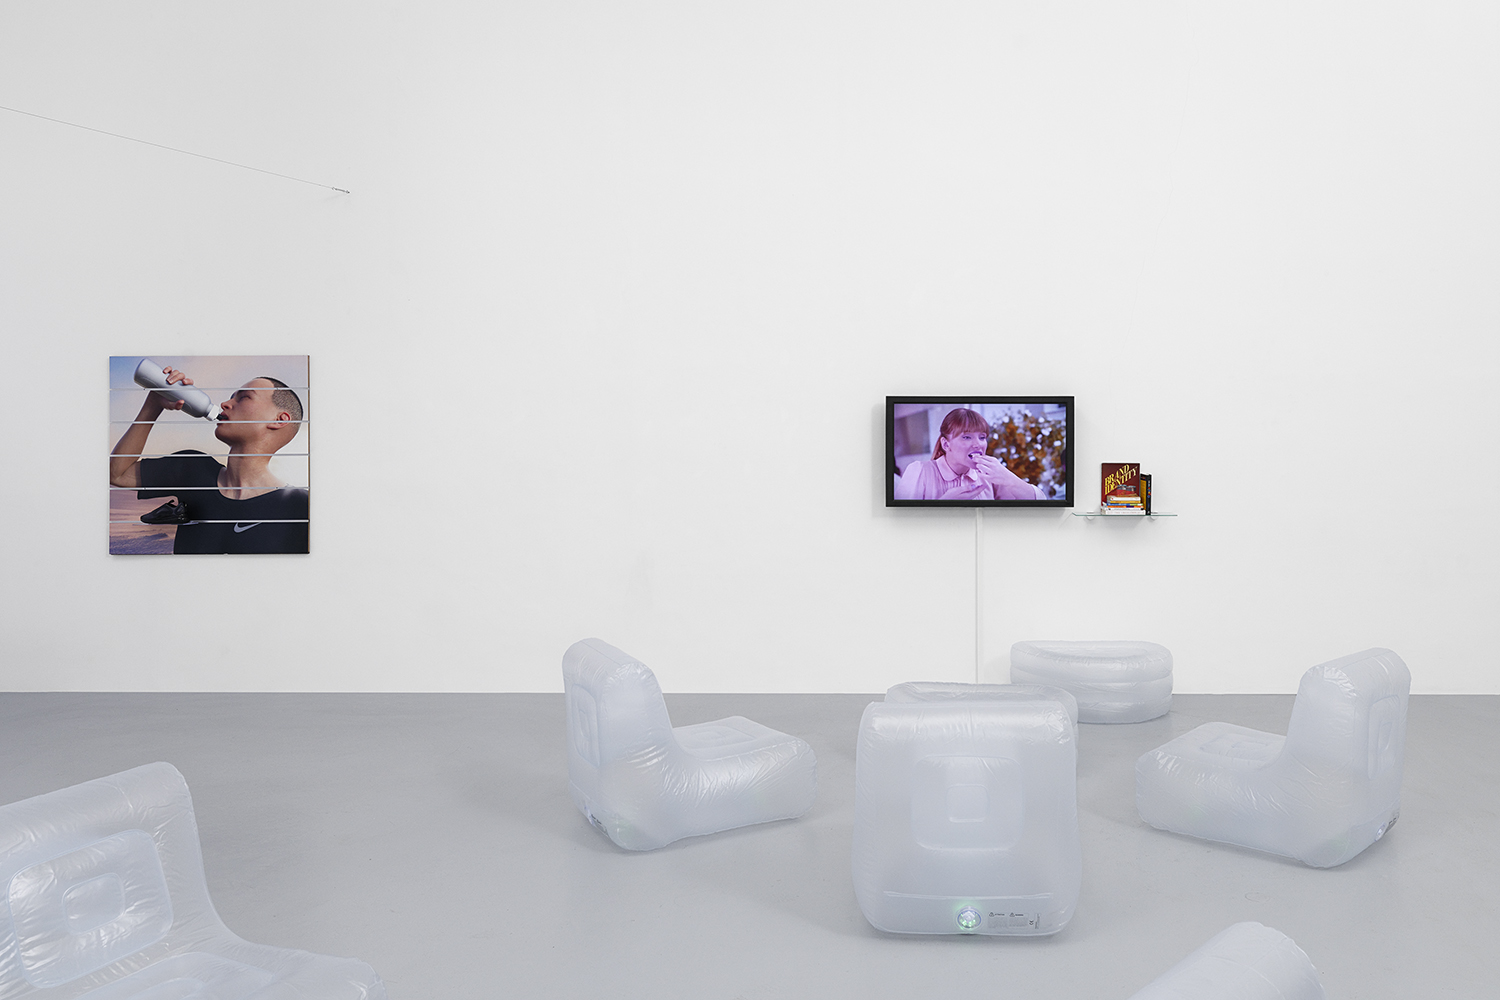 'Influencers'  Installation view, Ben Elliot, YouTube zapping installation, Hussenot, 2019, Paris 